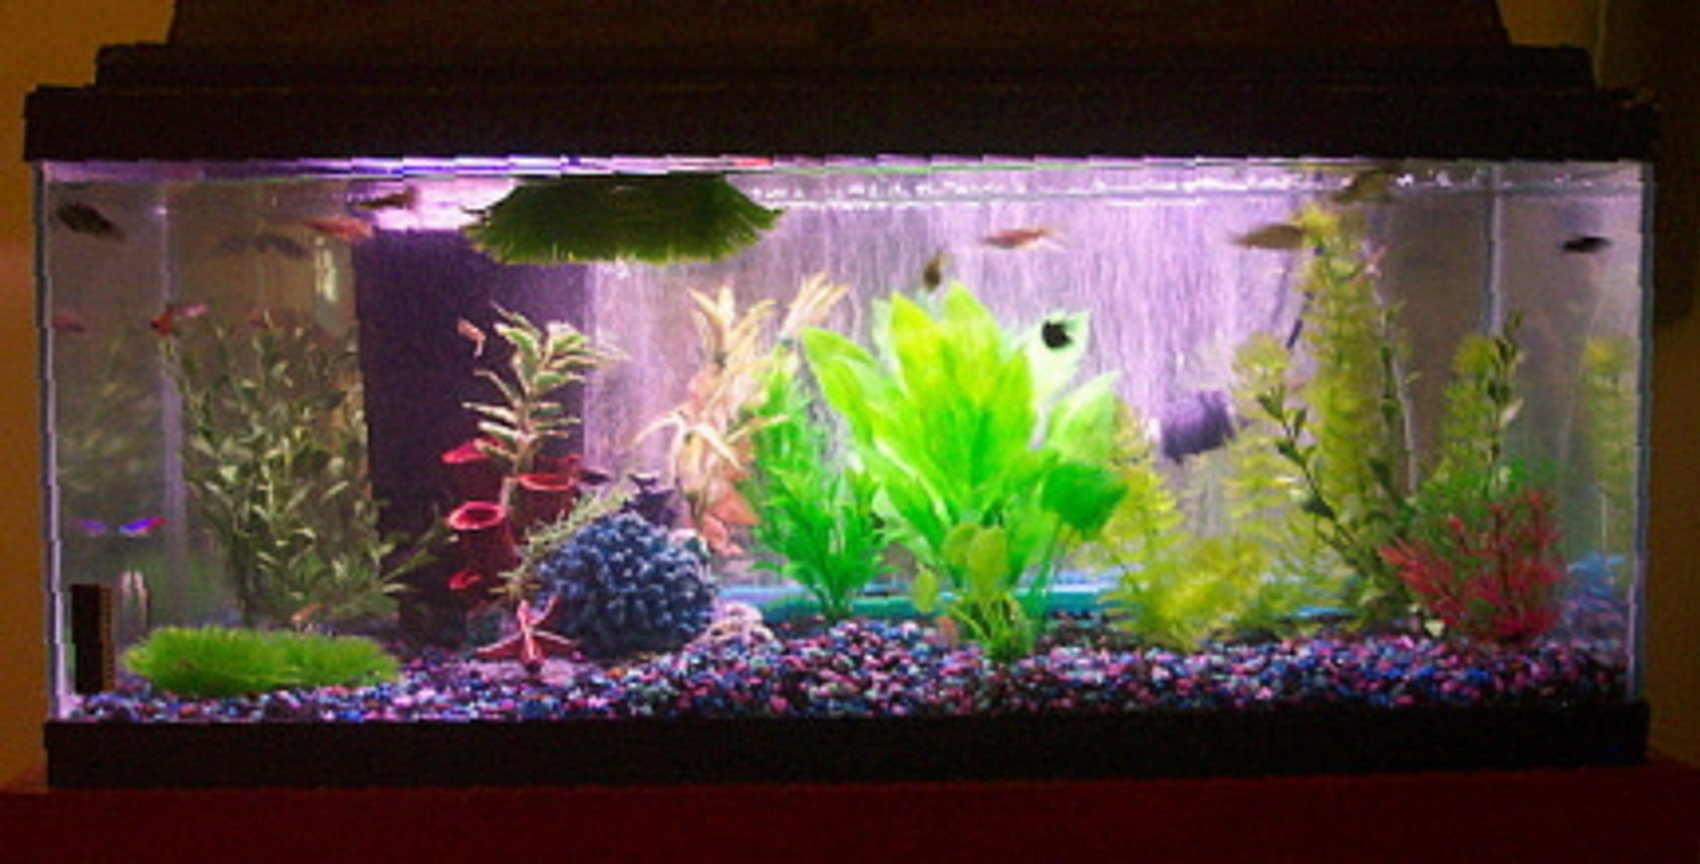 freshwater fish tank (mostly fish and non-living decorations) - 20g long tank